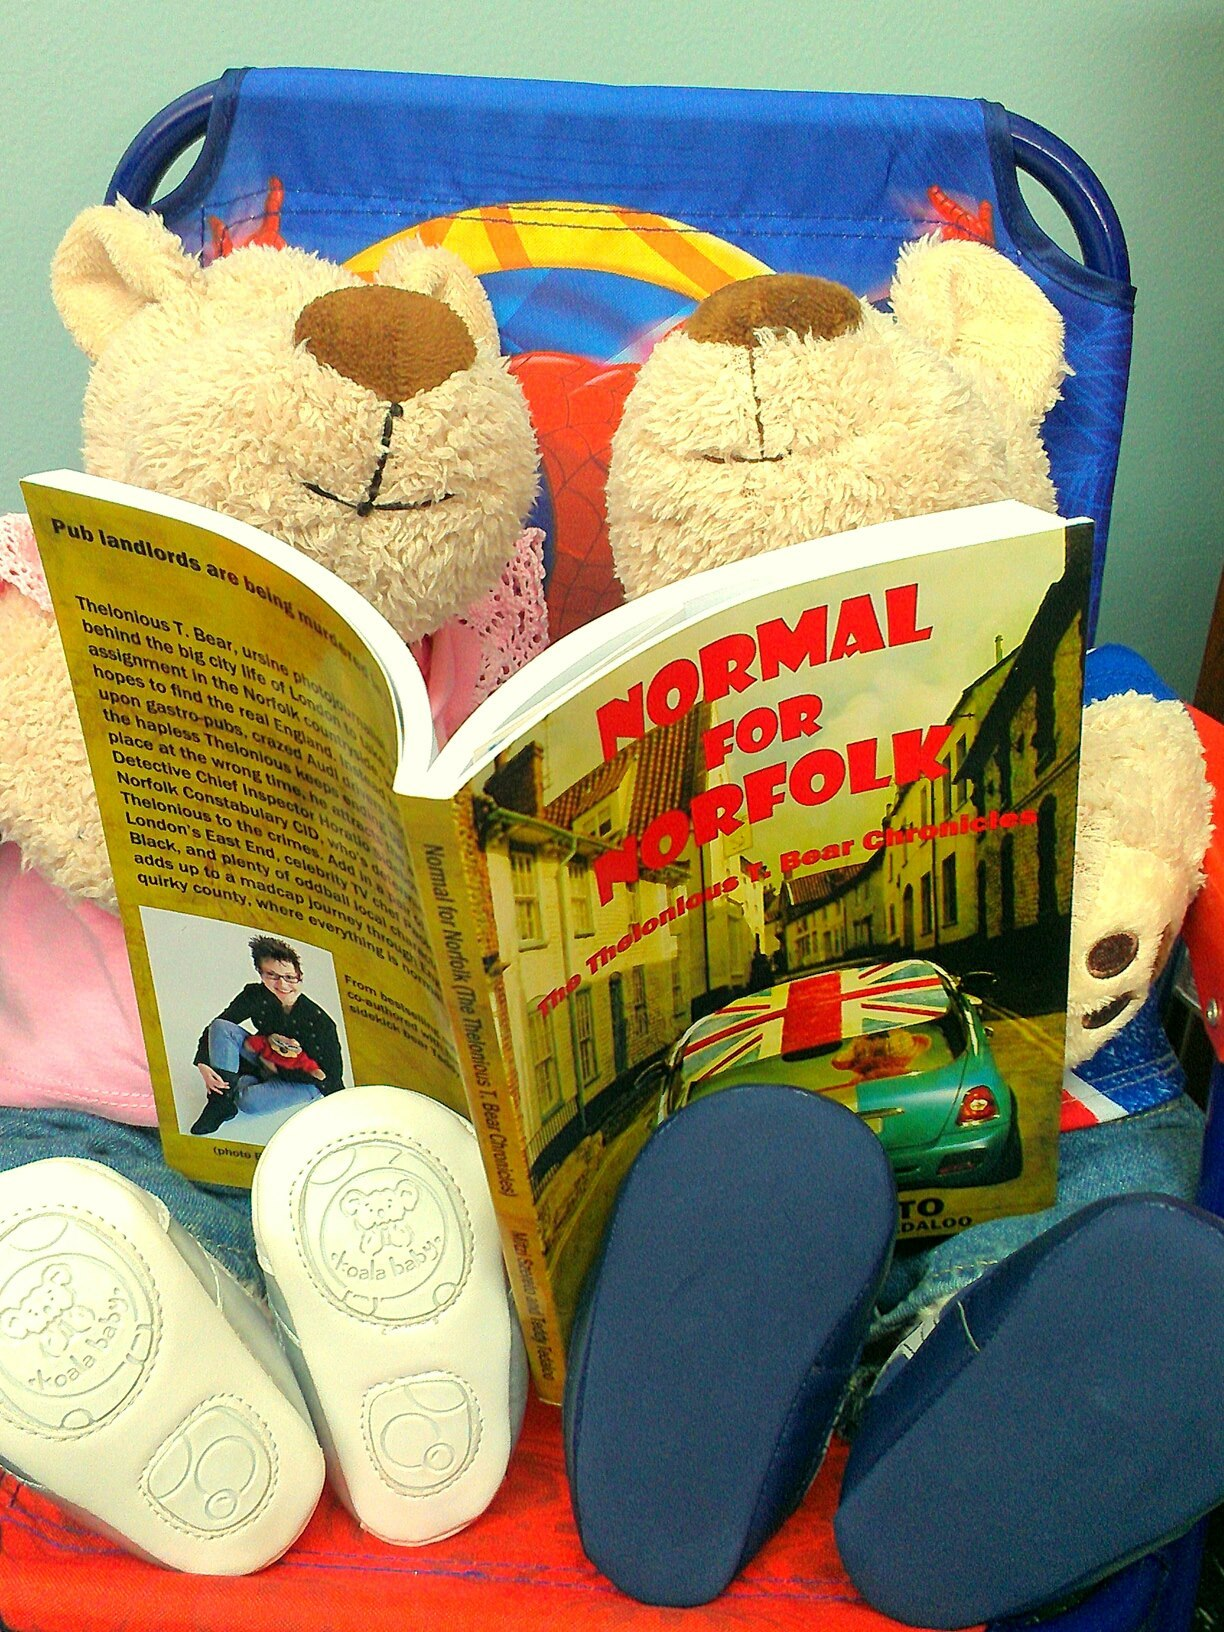 Readers continue to flock to buy their copies of NORMAL FOR NORFOLK (THE THELONIOUS T. BEAR CHRONICLES). http://mitziszereto.com/normalfornorfolk/